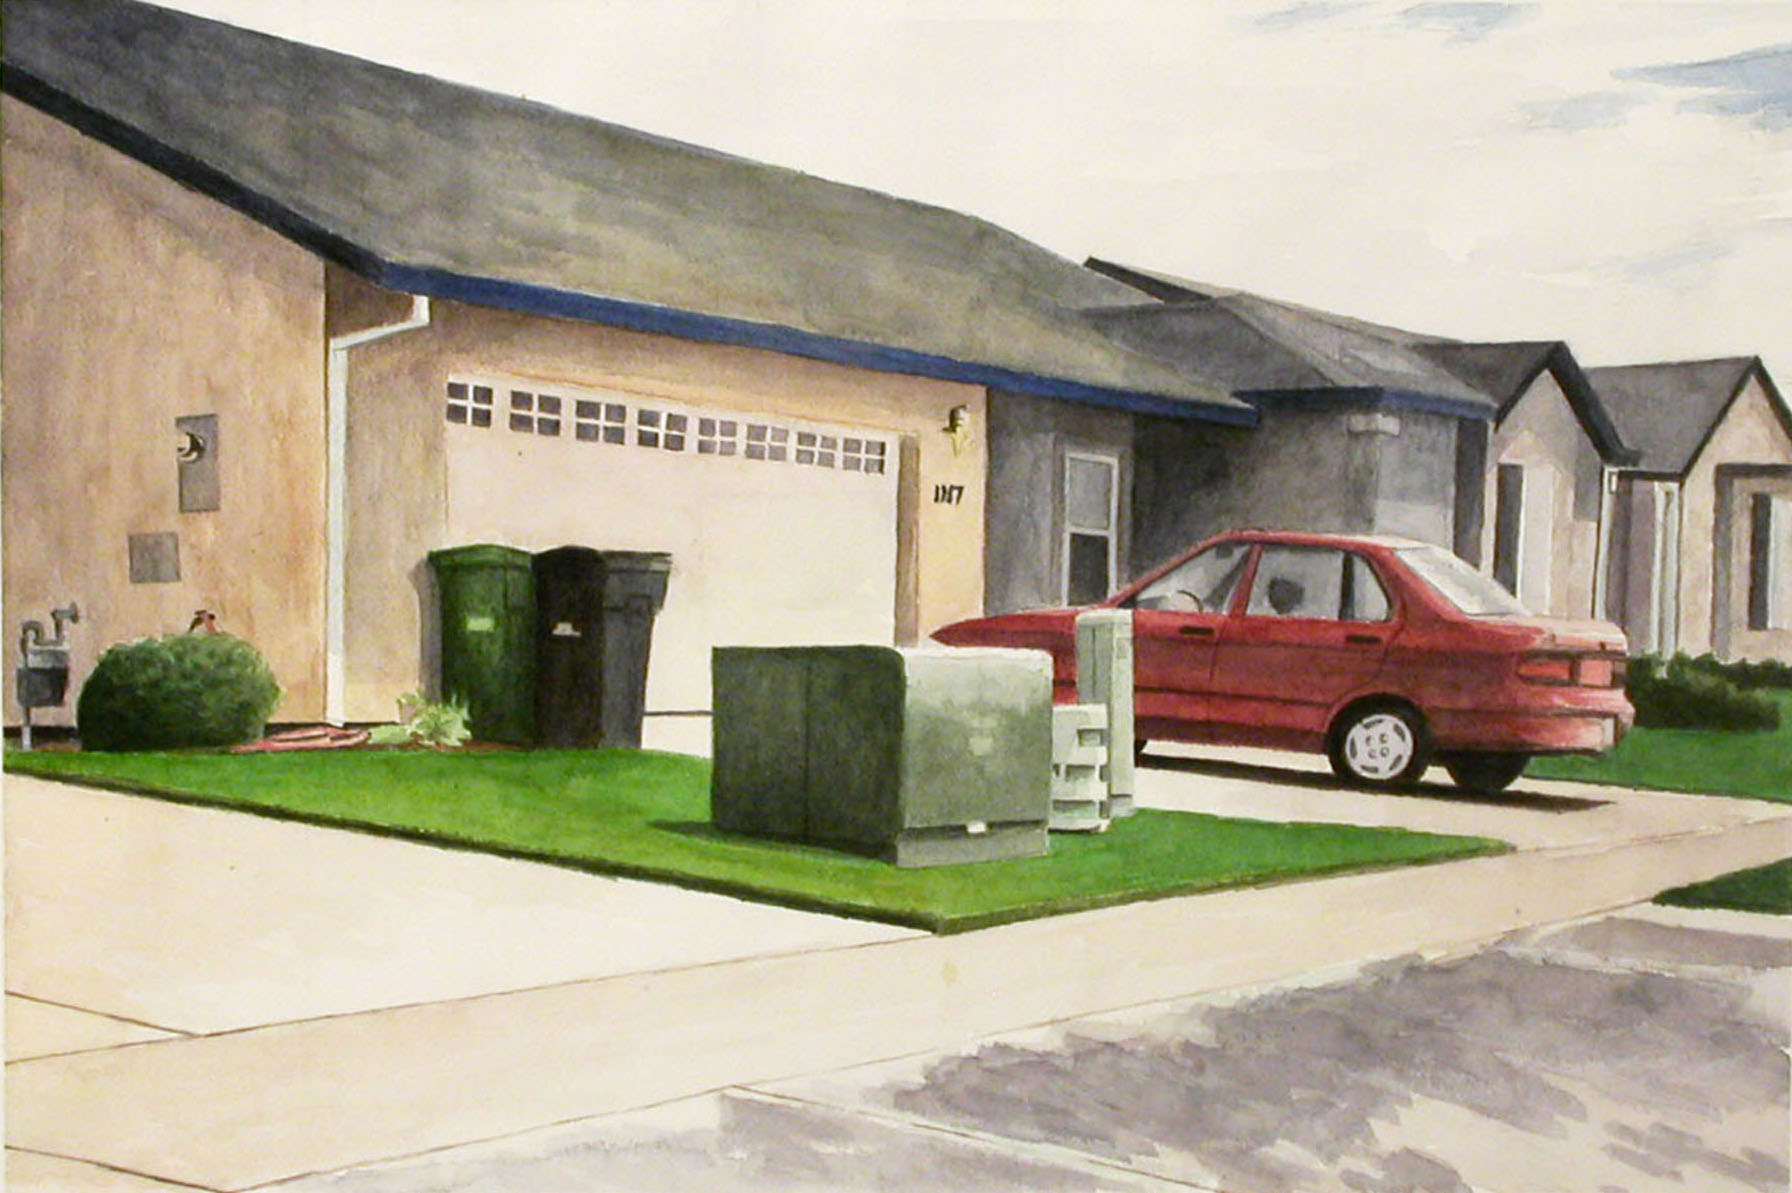 Driveway, 2002, watercolor, 14 x 21 in.